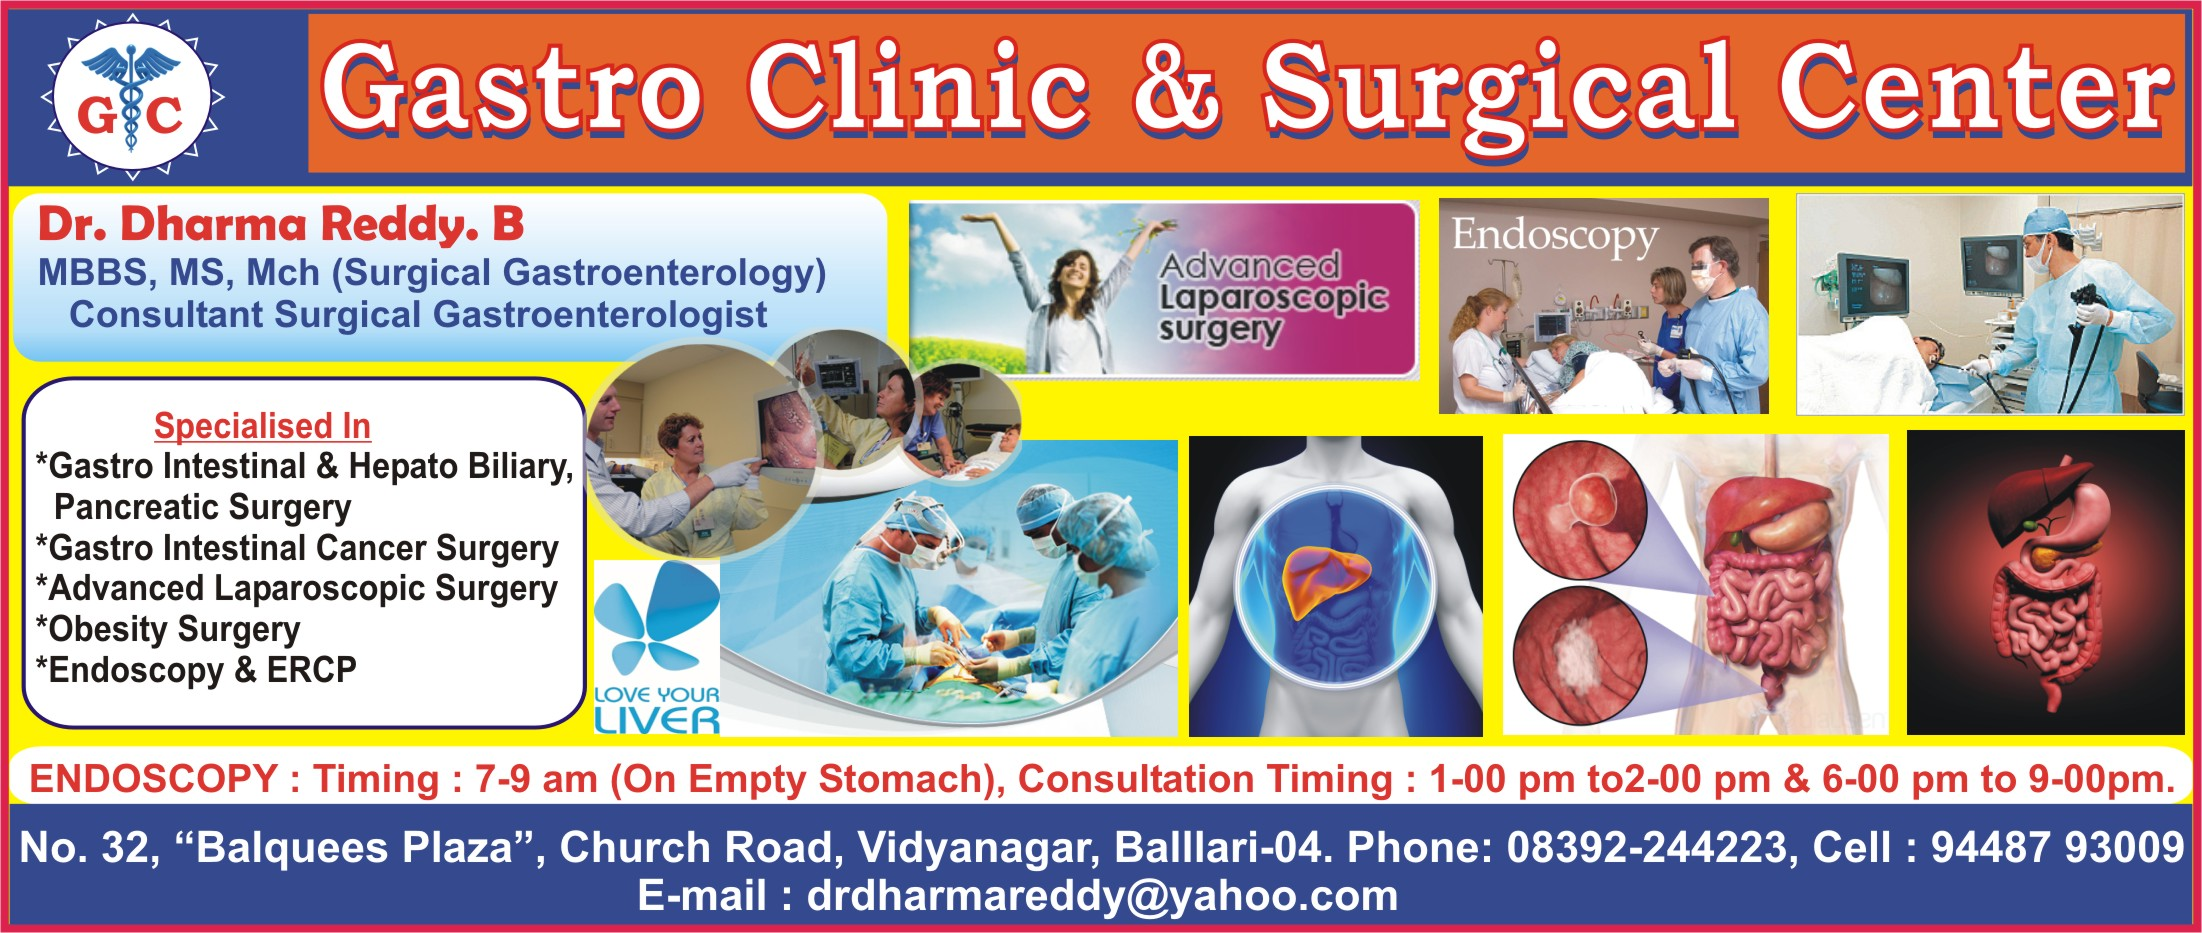 Gastro Clinic & Surgical Center | The Telit Yelow Pages